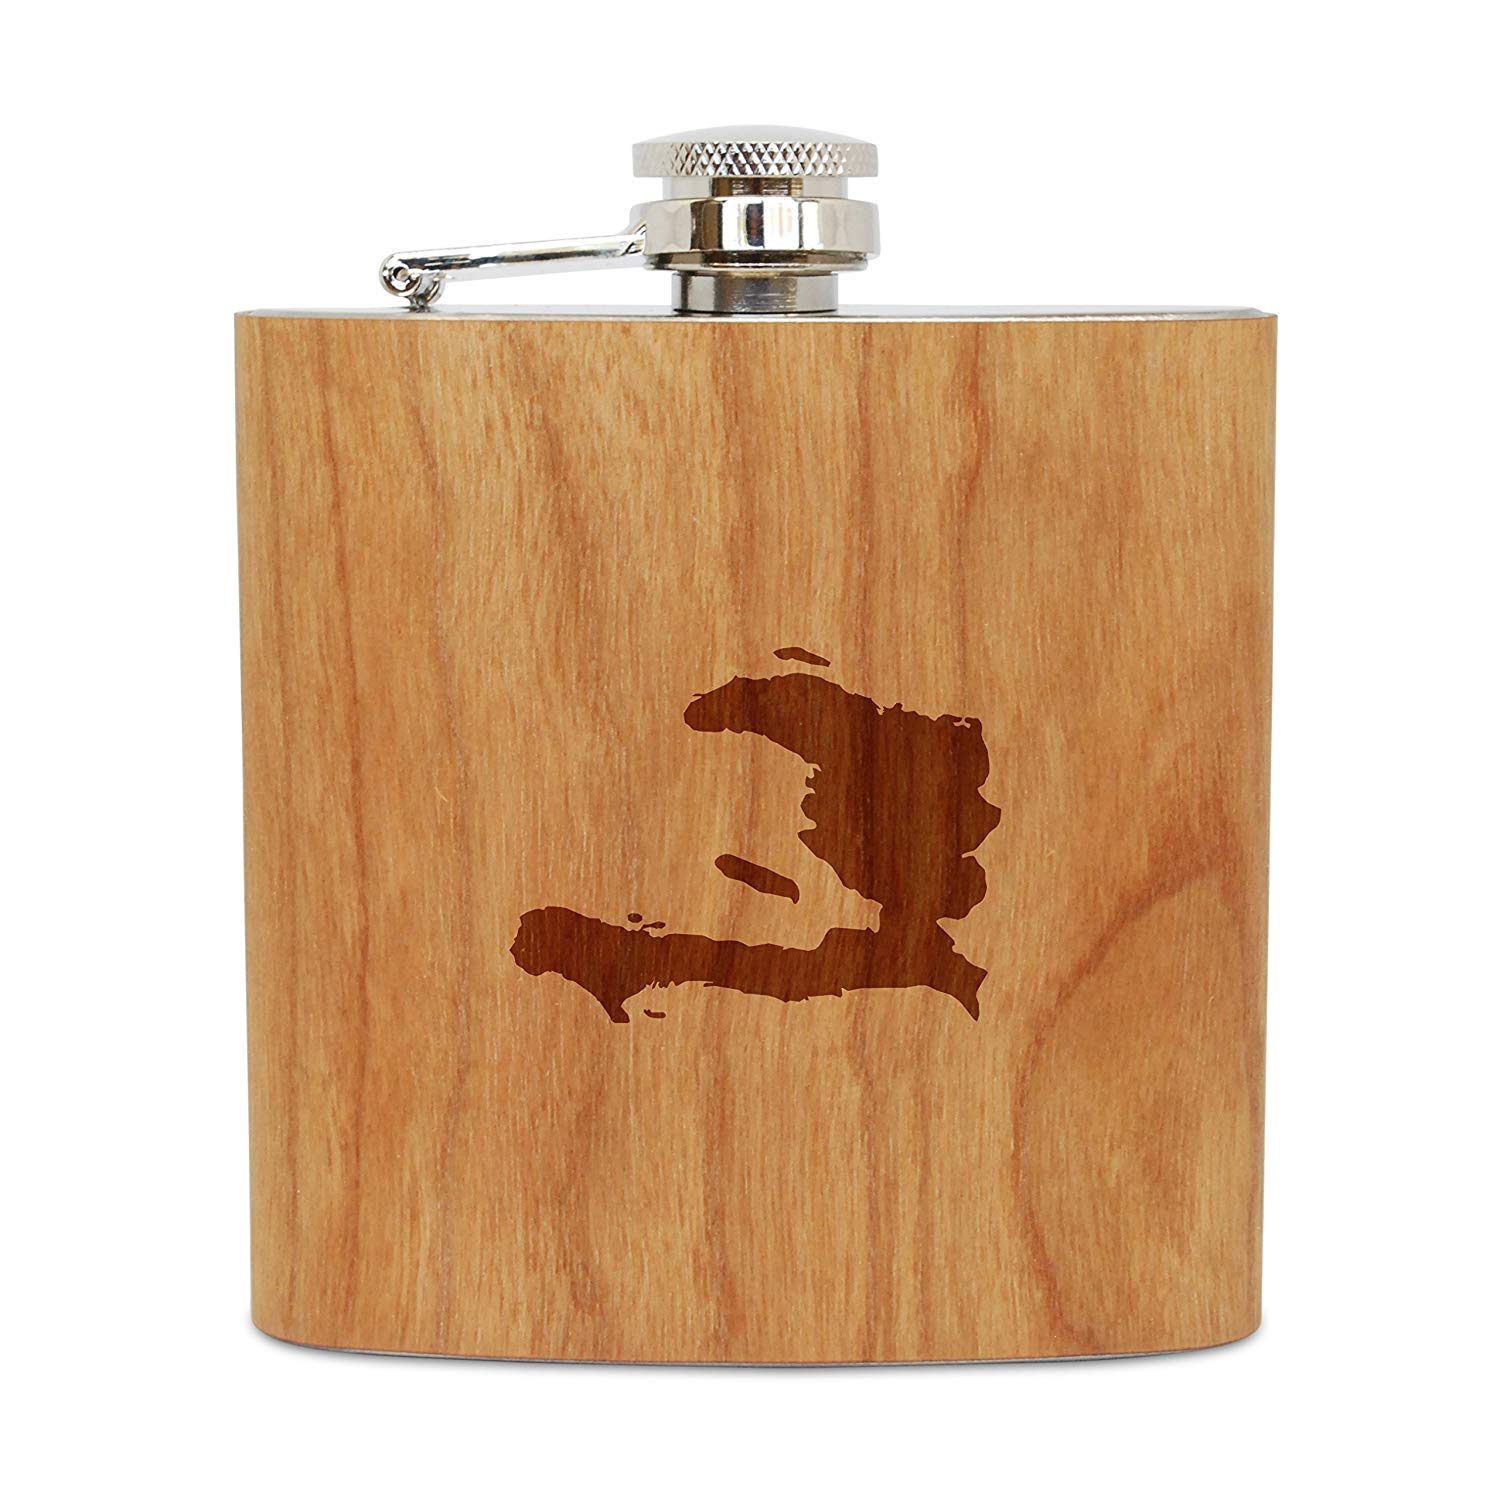 WOODEN ACCESSORIES COMPANY Cherry Wood Flask With Stainless Steel Body - Laser Engraved Flask With Haiti Design - 6 Oz Wood Hip Flask Handmade In USA